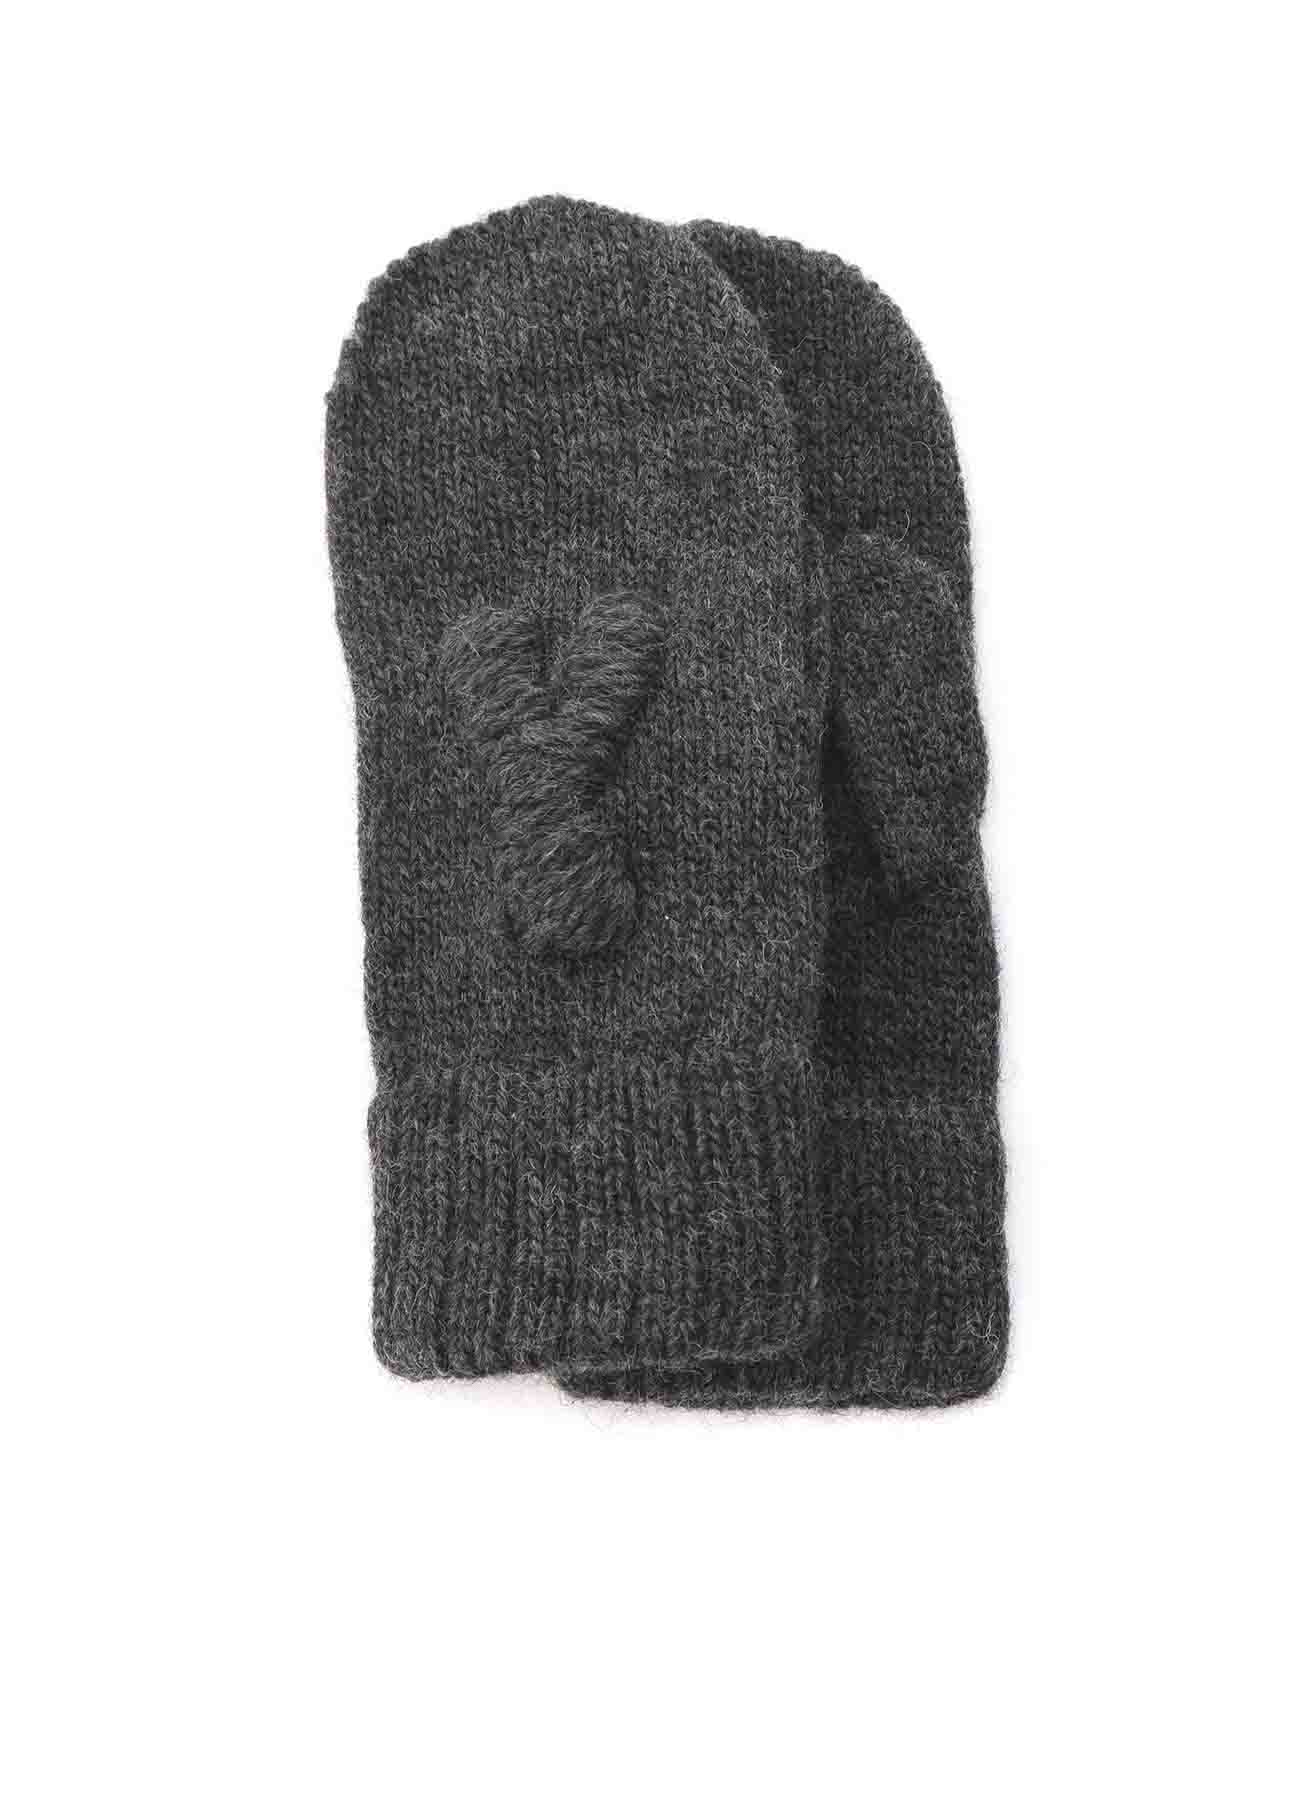 1/3 W EMBROIDERED KNIT GLOVE